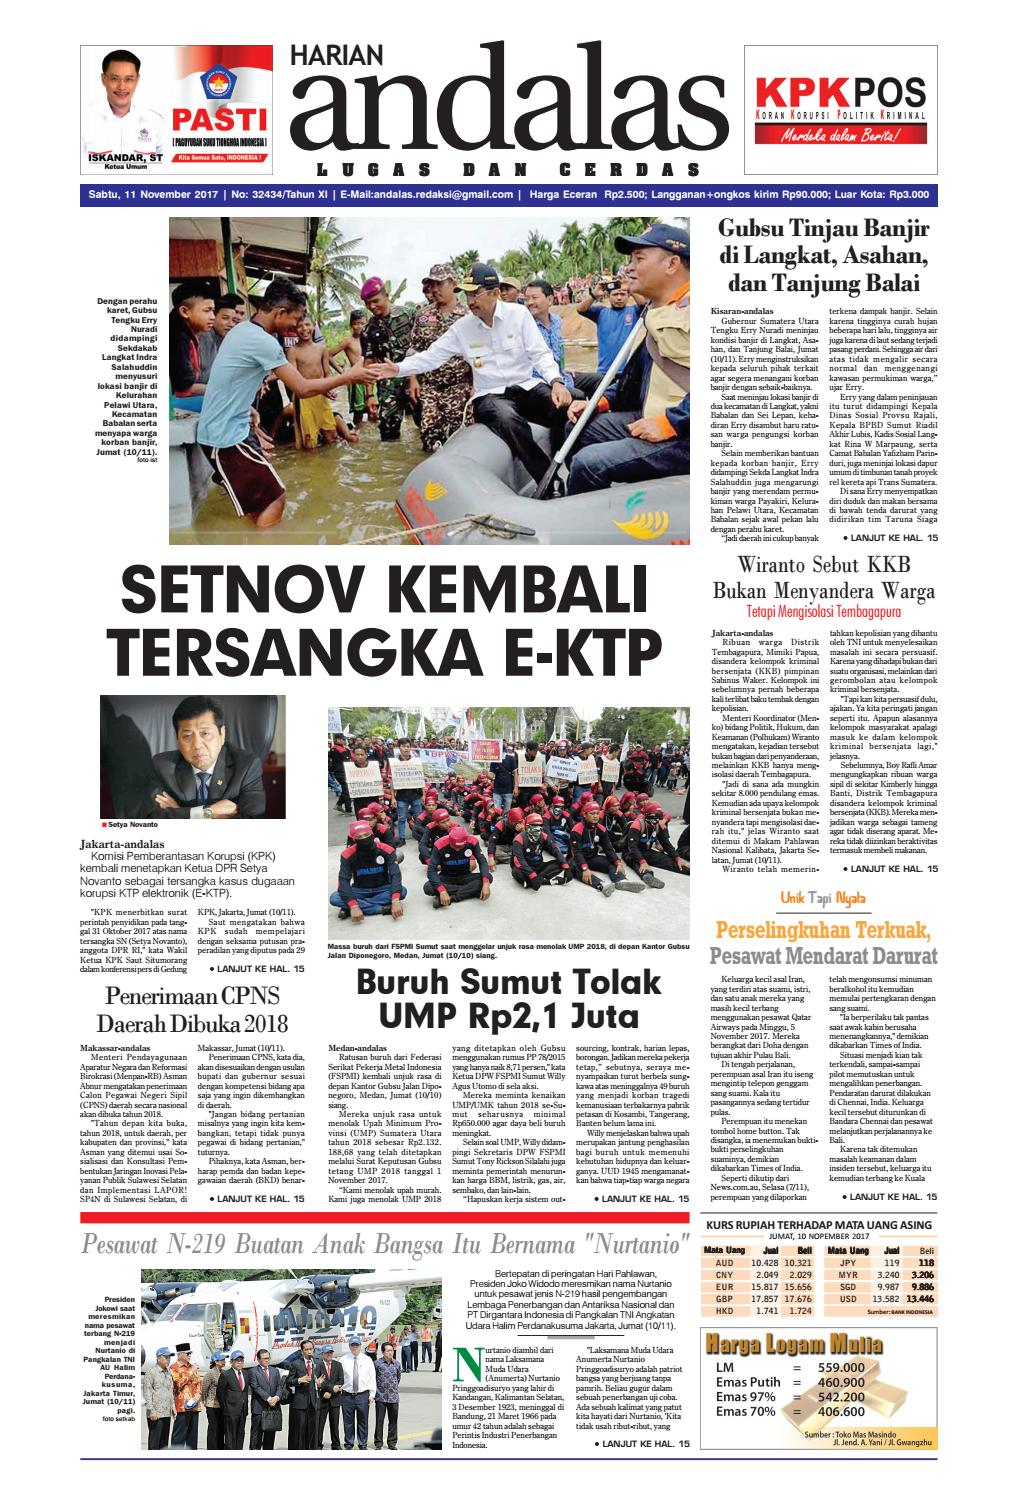 Epaper andalas edisi sabtu 11 november 2017 by media andalas